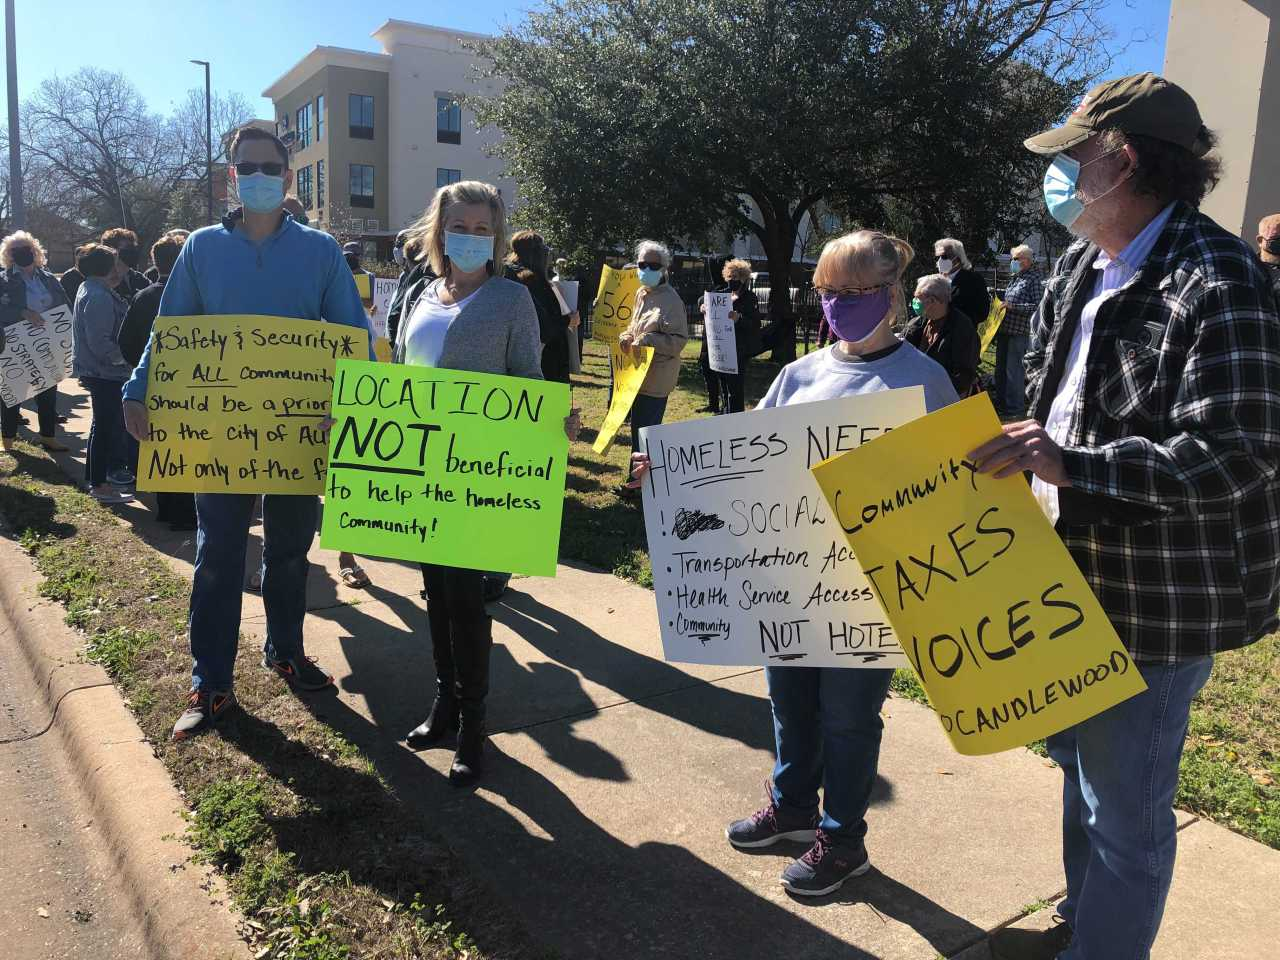 'Save our community': Neighbors protest against plan to house homeless people at northwest Austin hotel